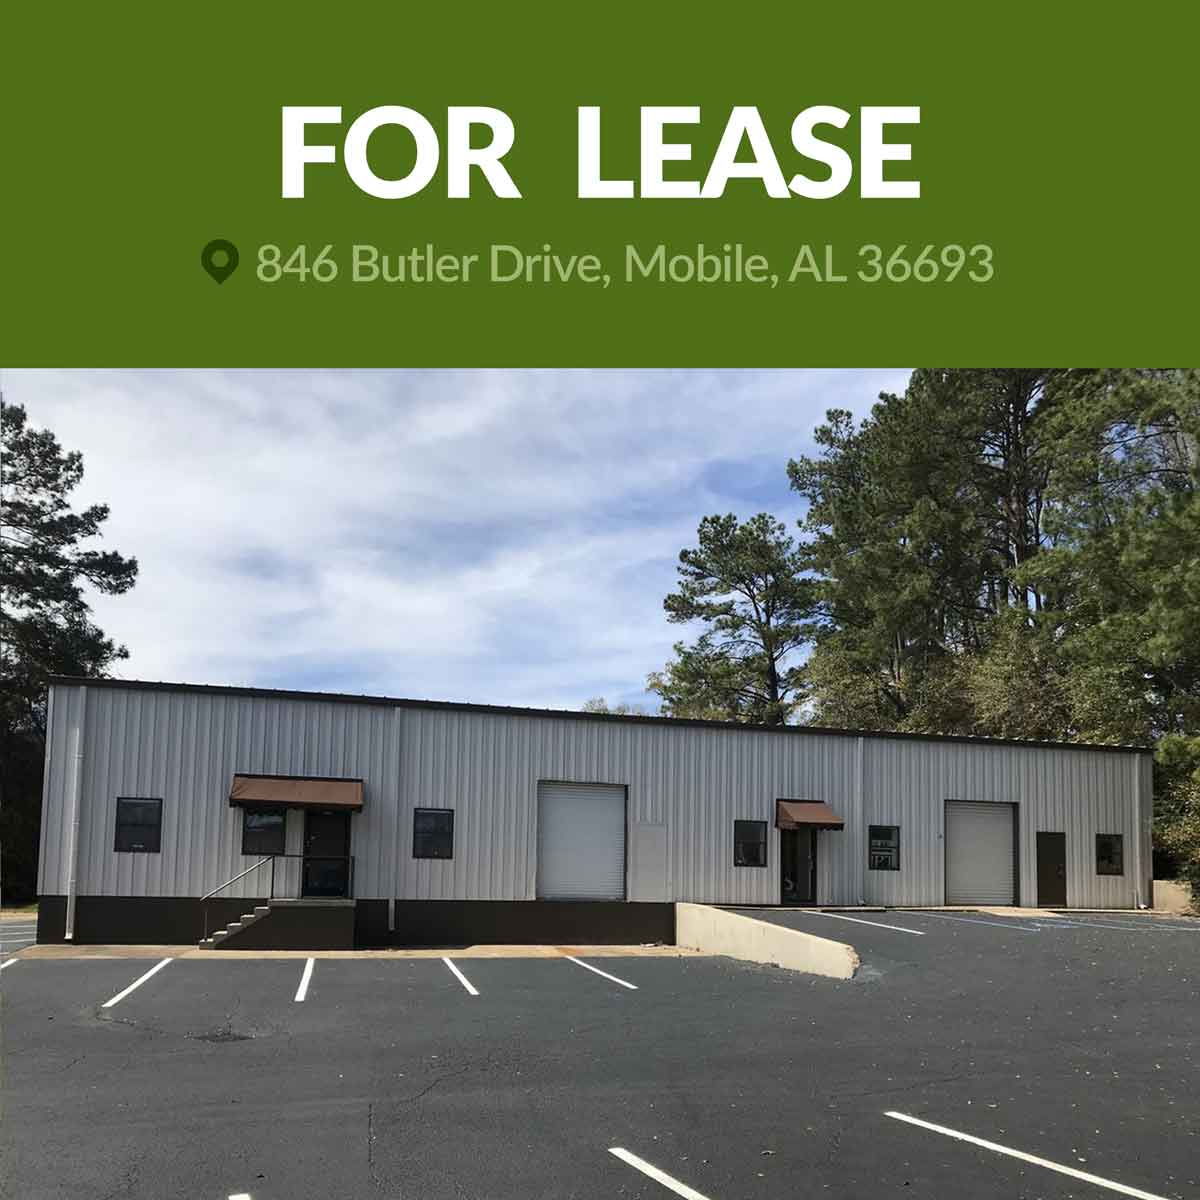 846 Butler Drive, Mobile, Alabama 36693